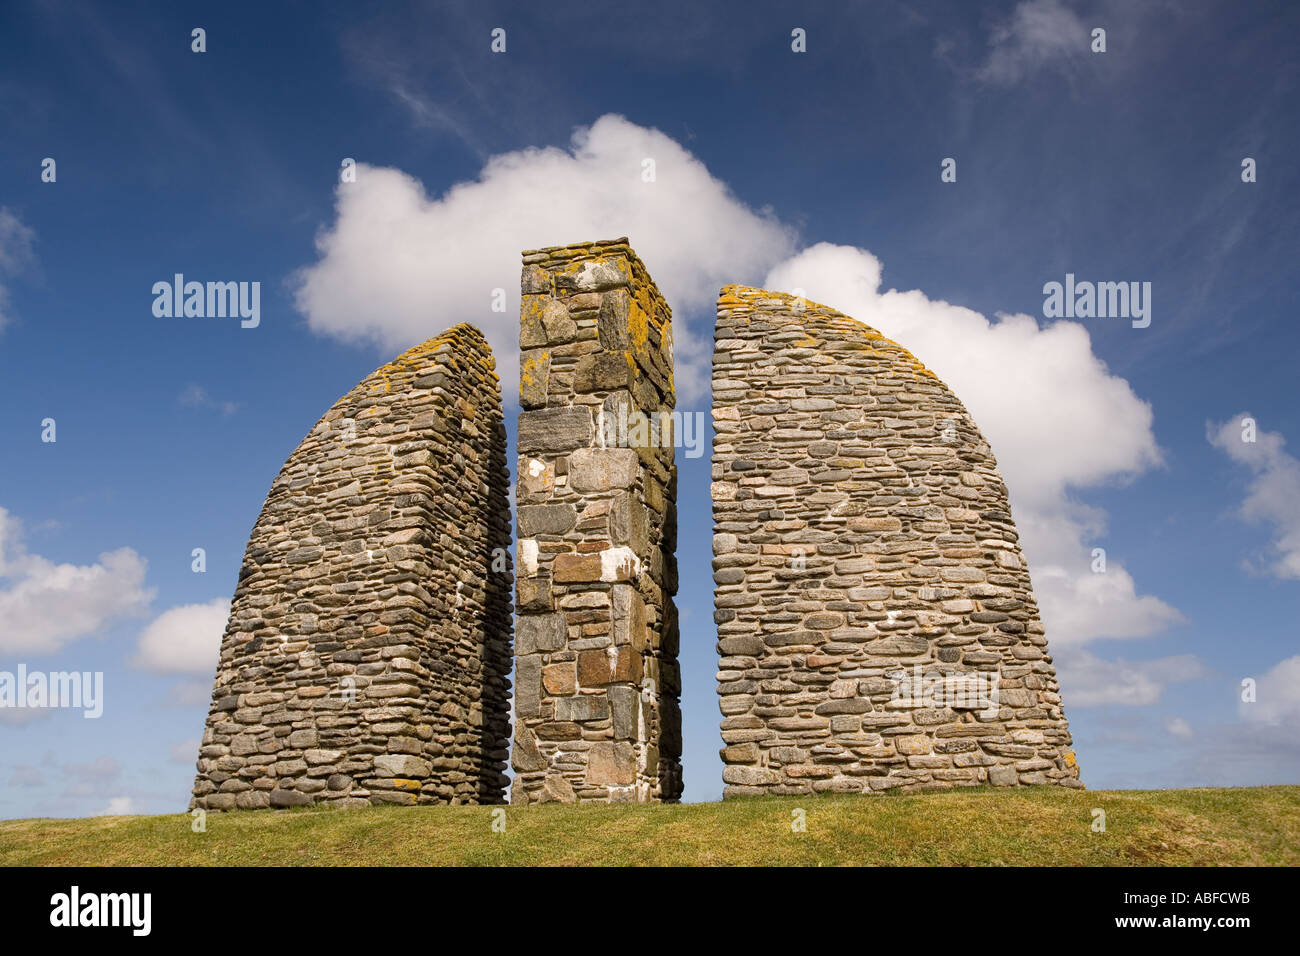 UK Scotland Western Isles Outer Hebrides Lewis Stornoway Land Raiders Monument by Will MacLean - Stock Image